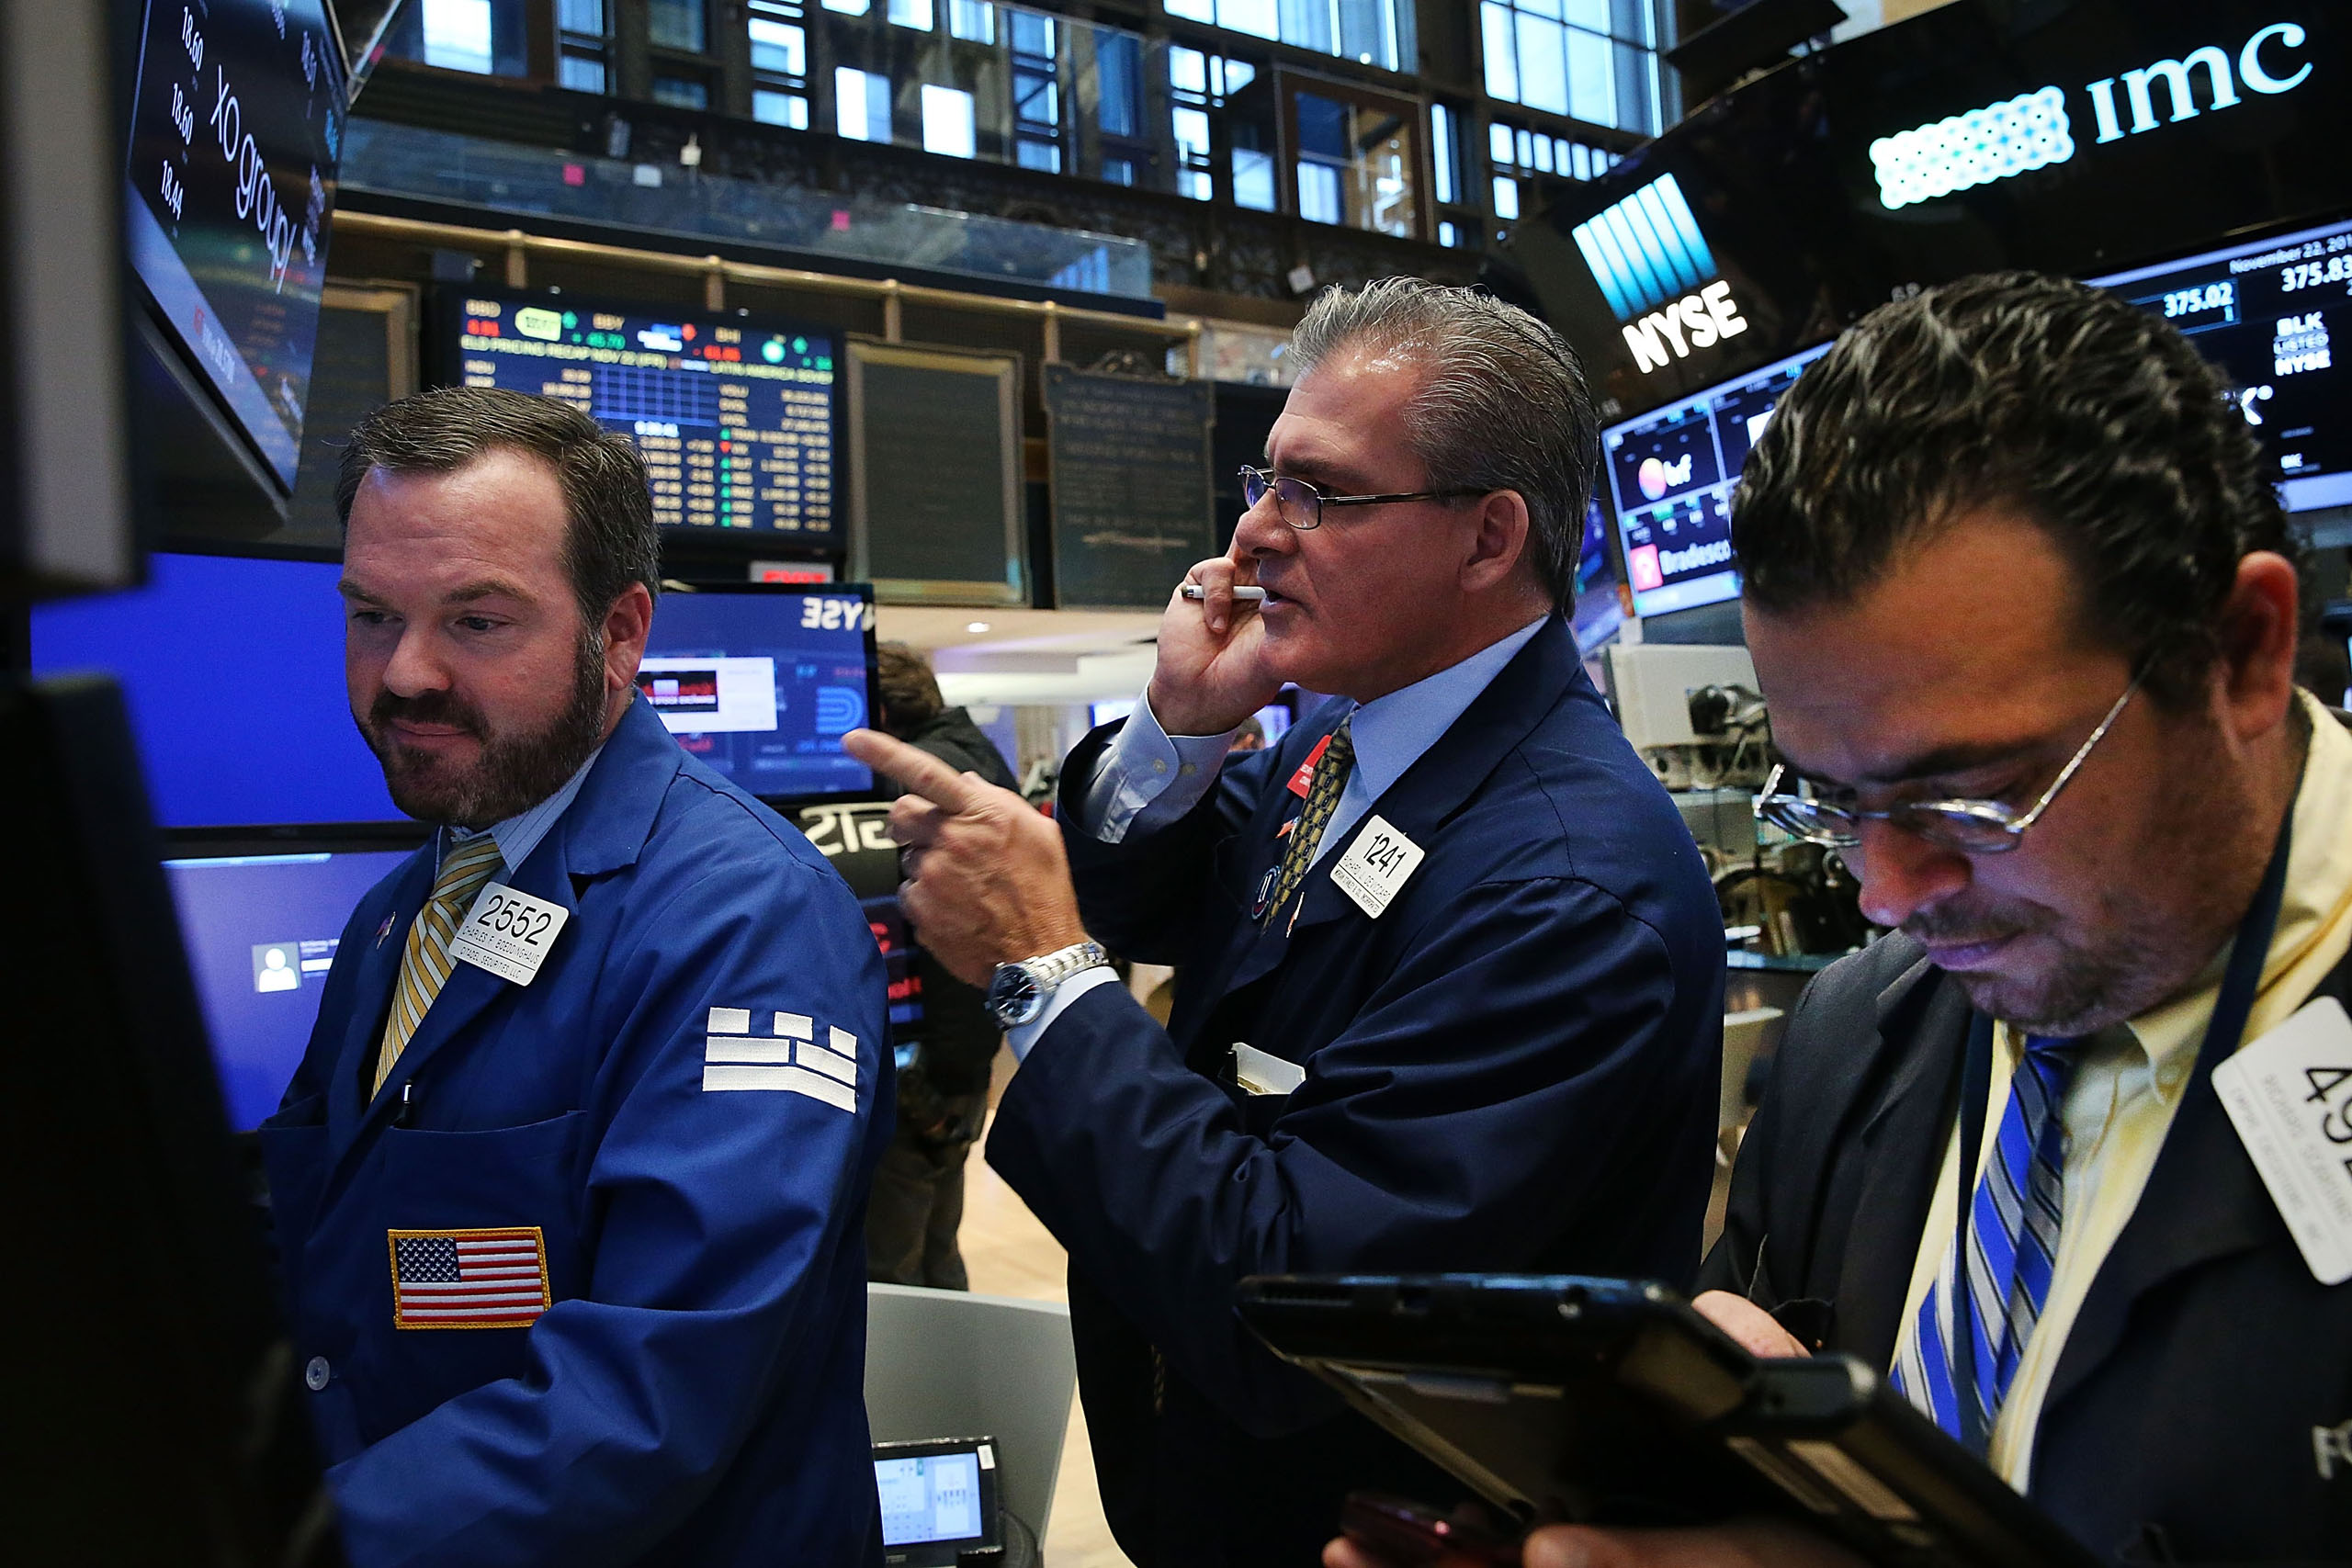 Traders work on the floor of the New York Stock Exchange (NYSE) on November 22, 2016.